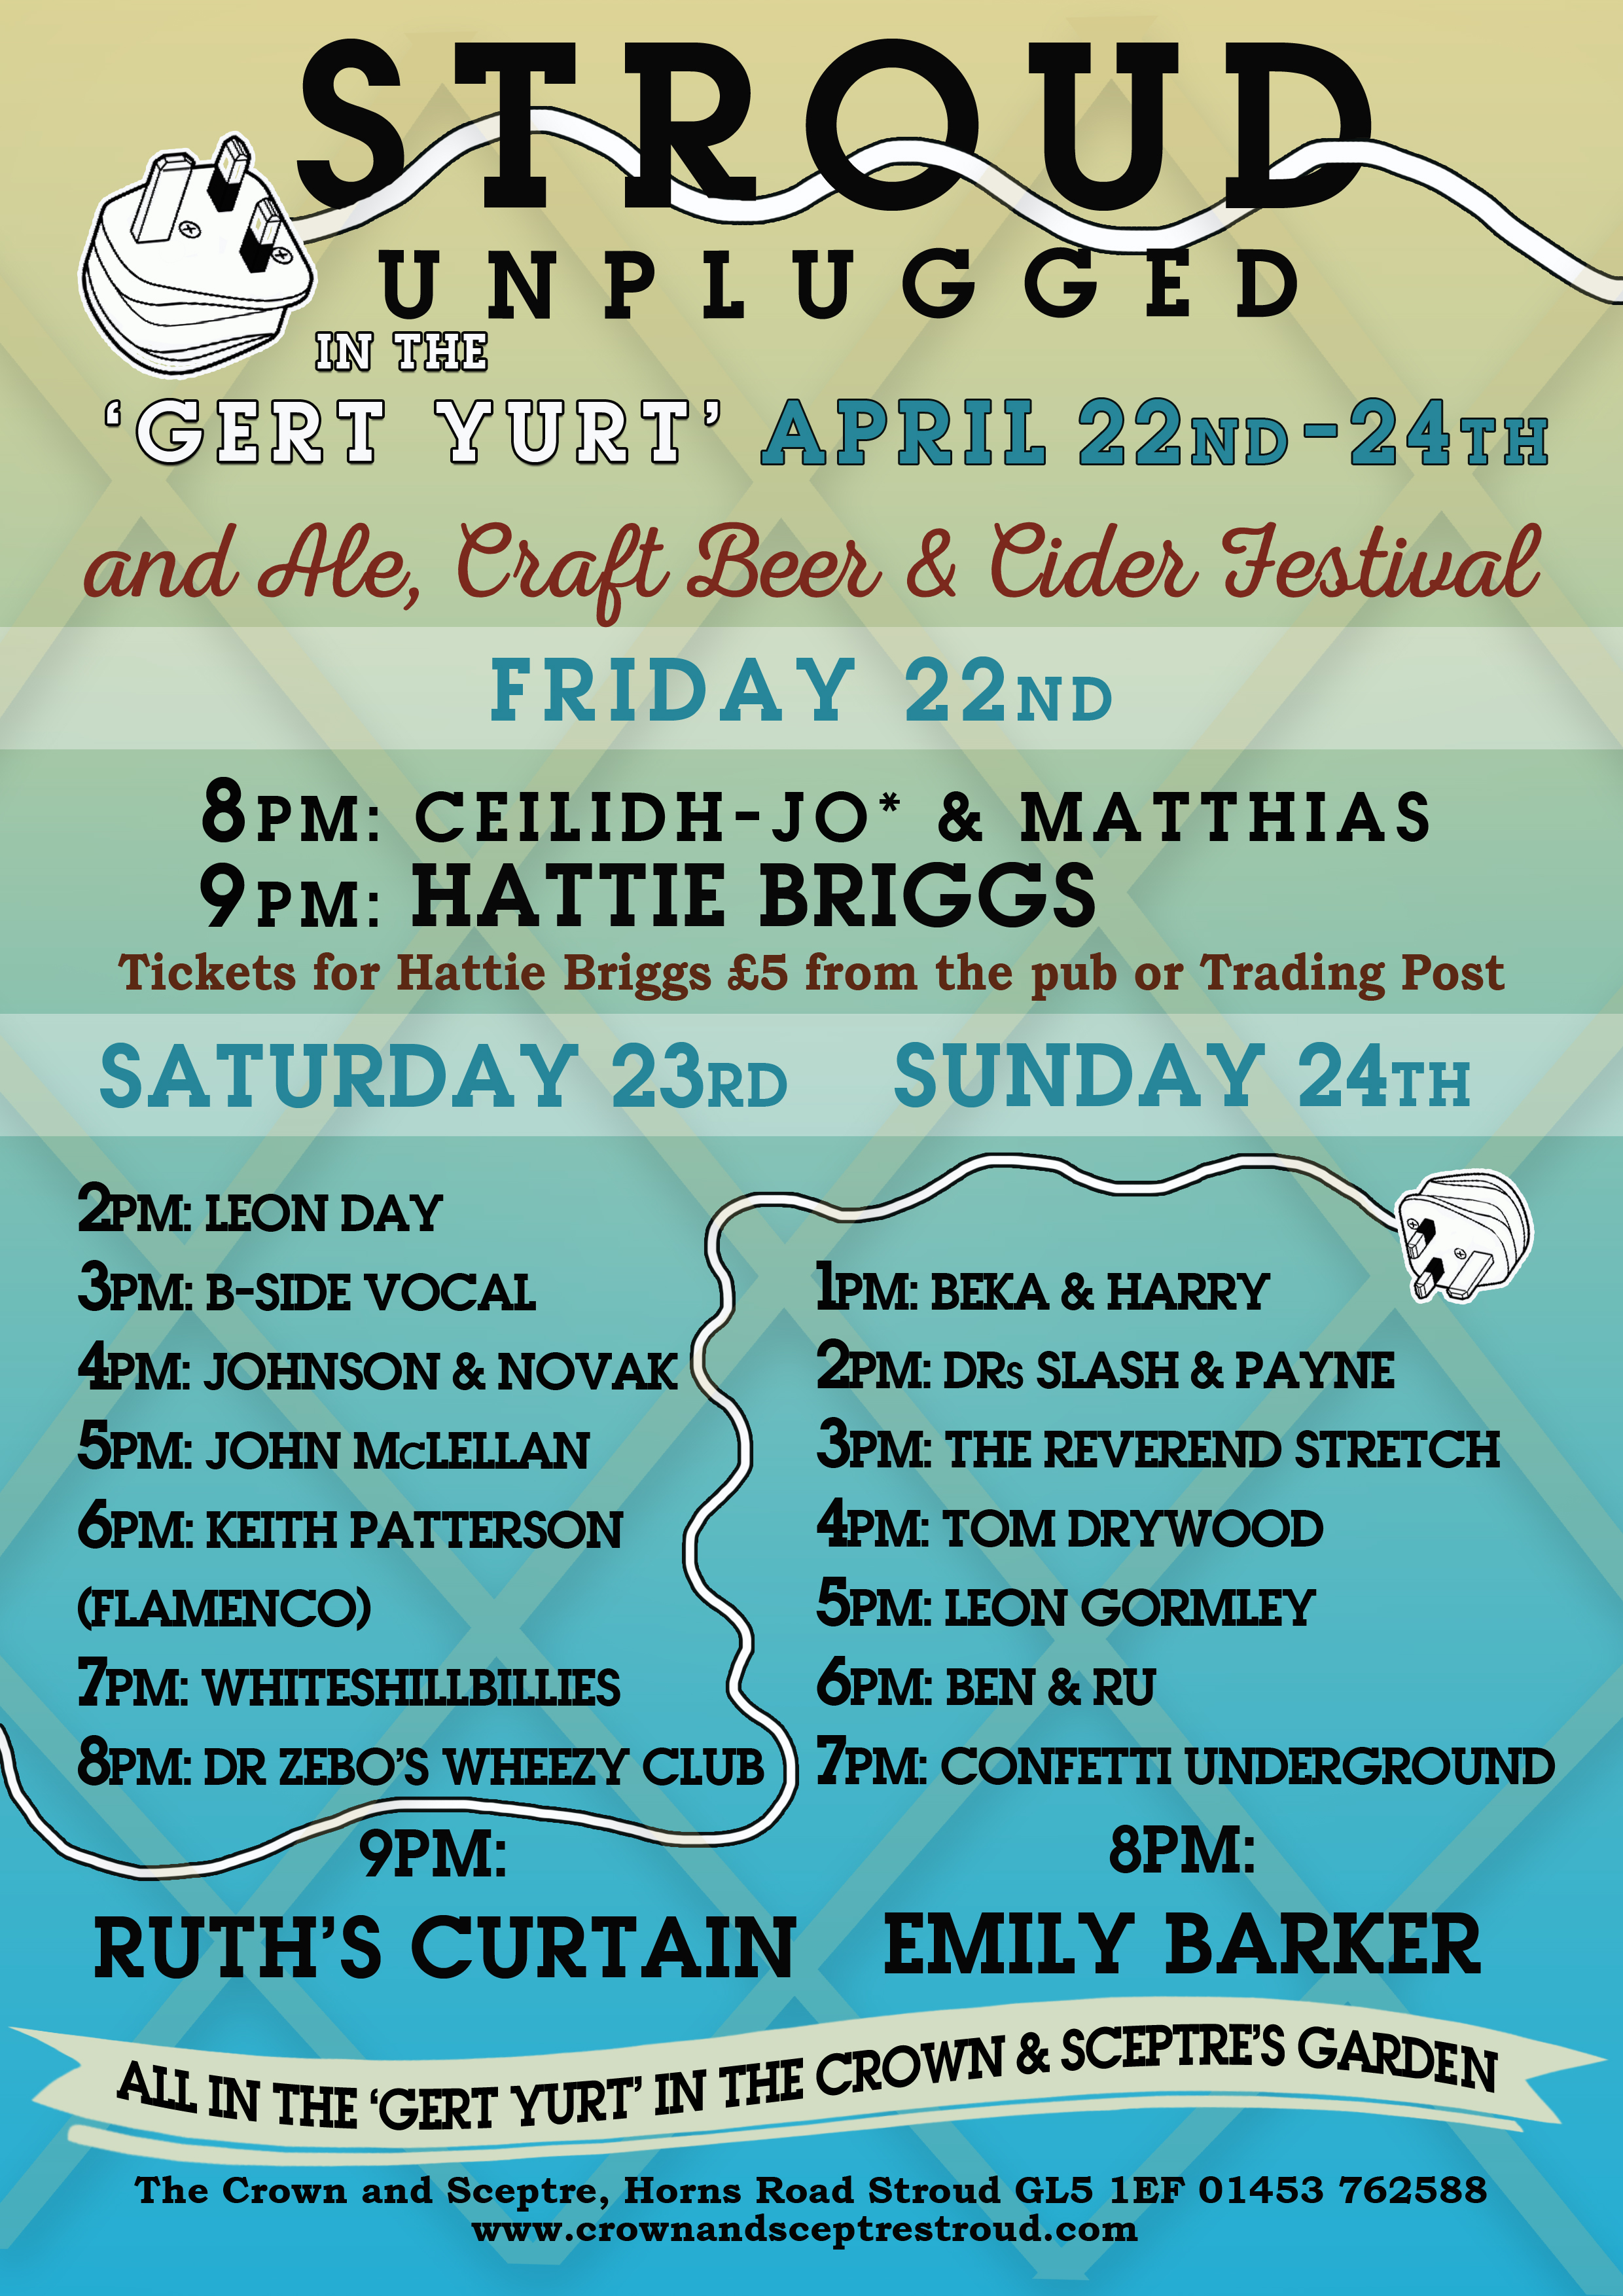 Stroud Unplugged16lineup.jpg